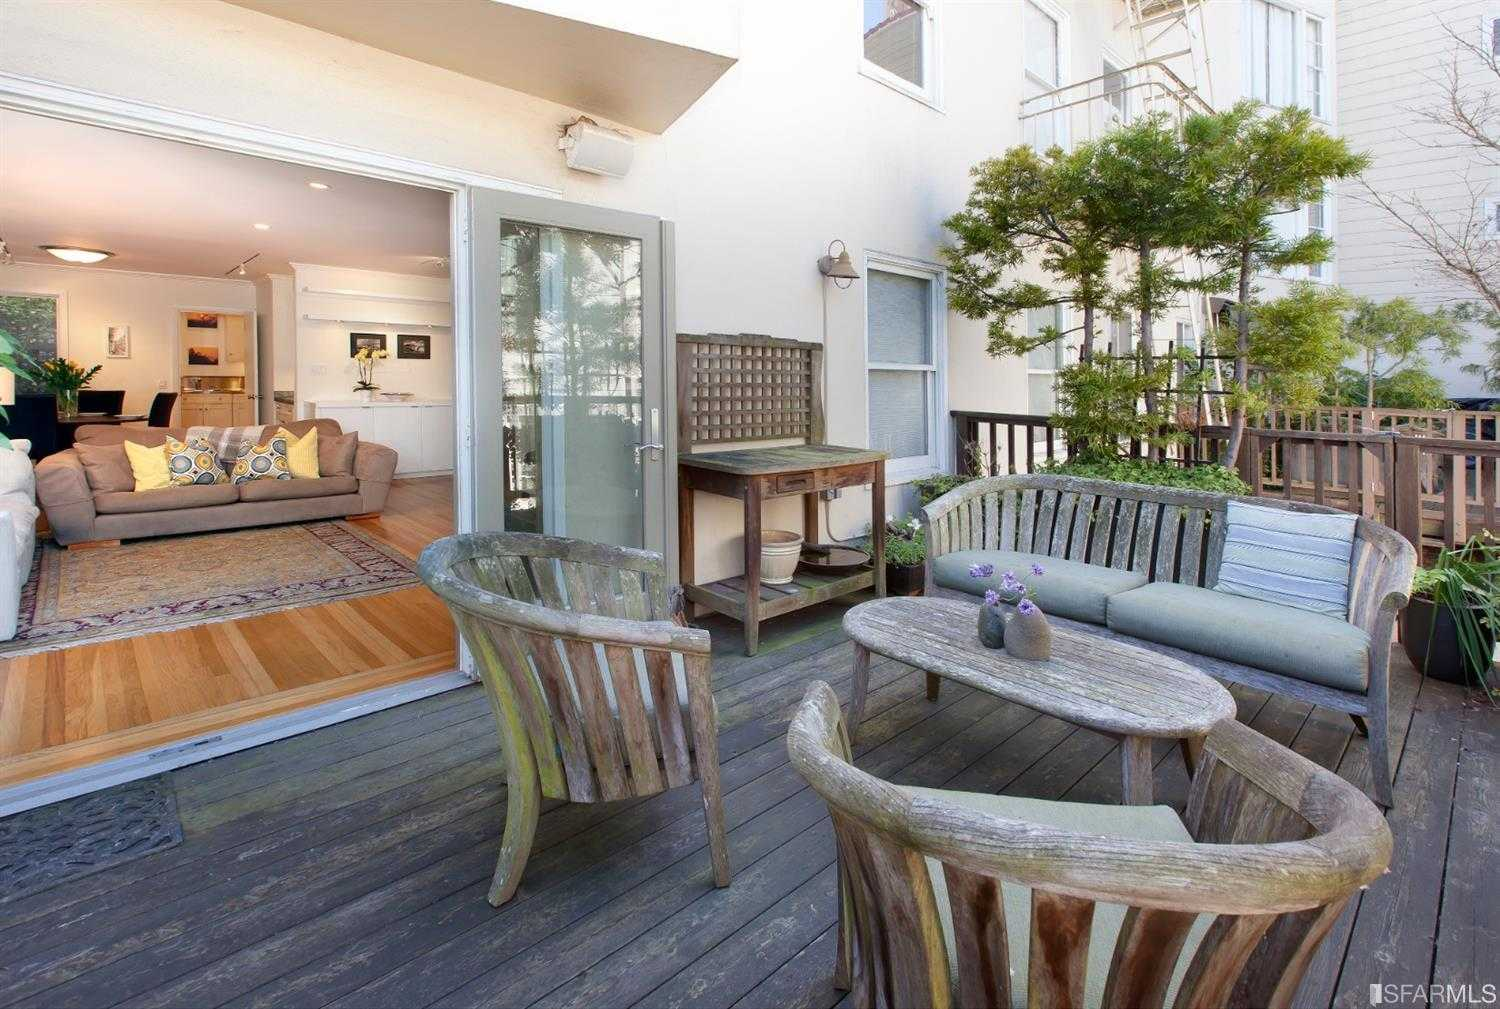 $1,295,000 - 1Br/1Ba -  for Sale in San Francisco